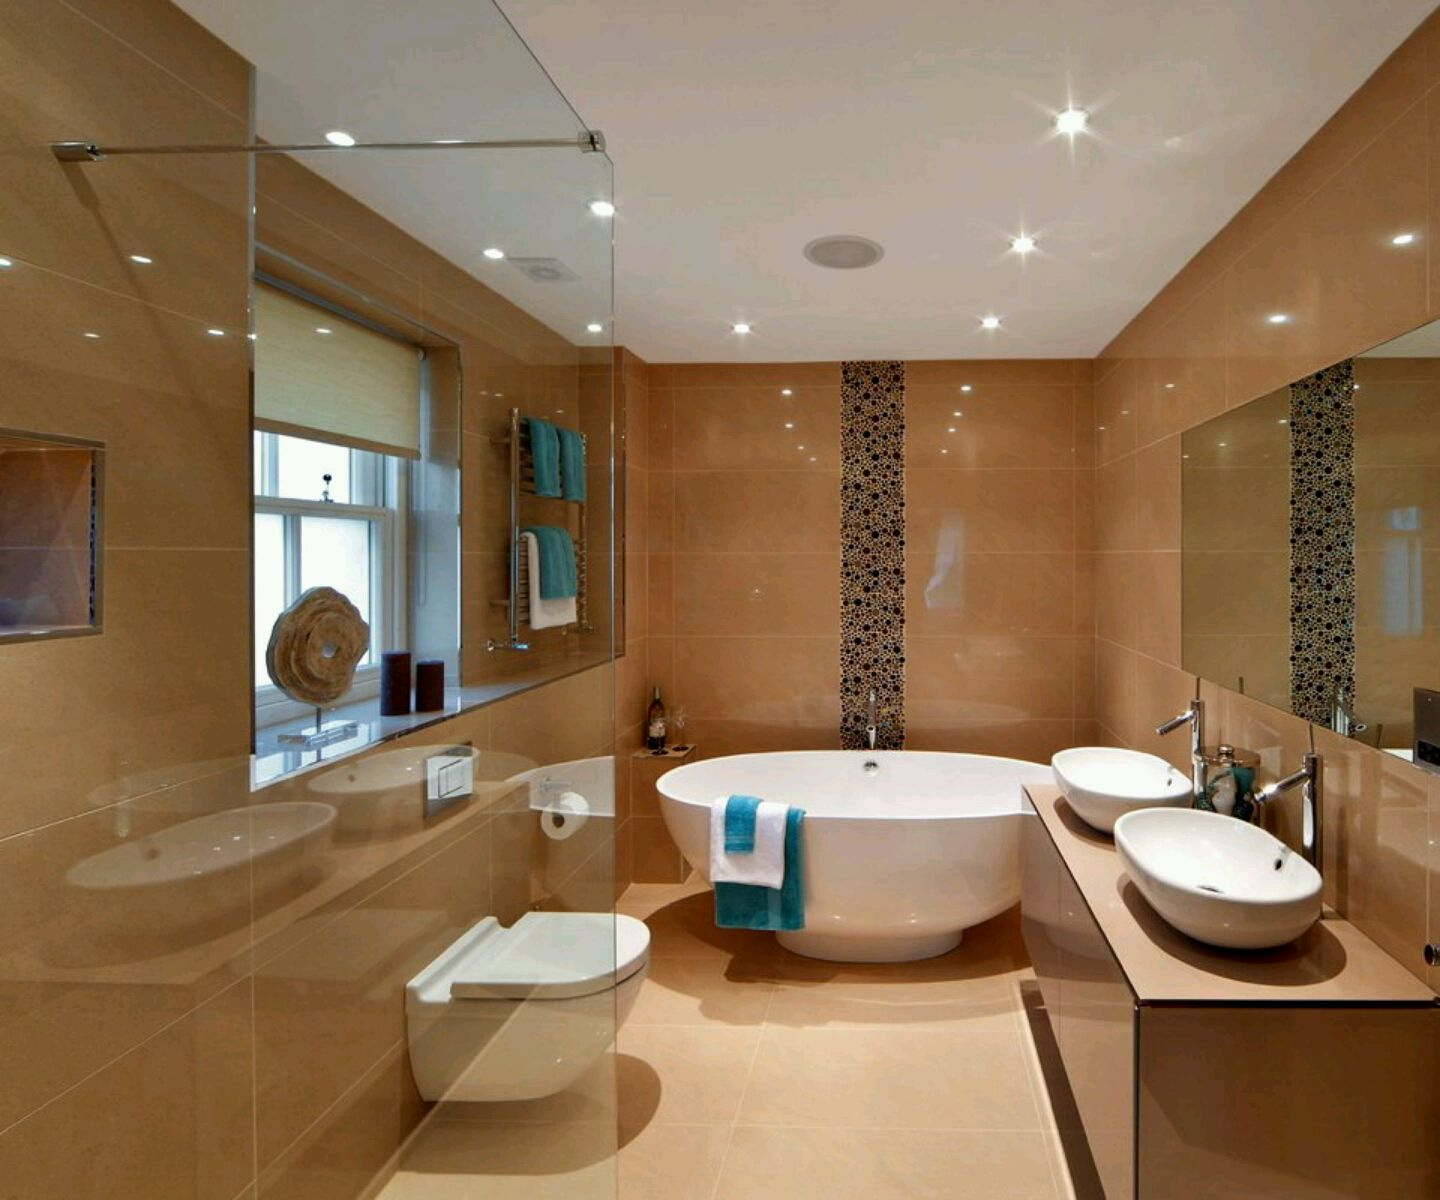 Modern bathroom decoration - 25 Luxurious Bathroom Design Ideas